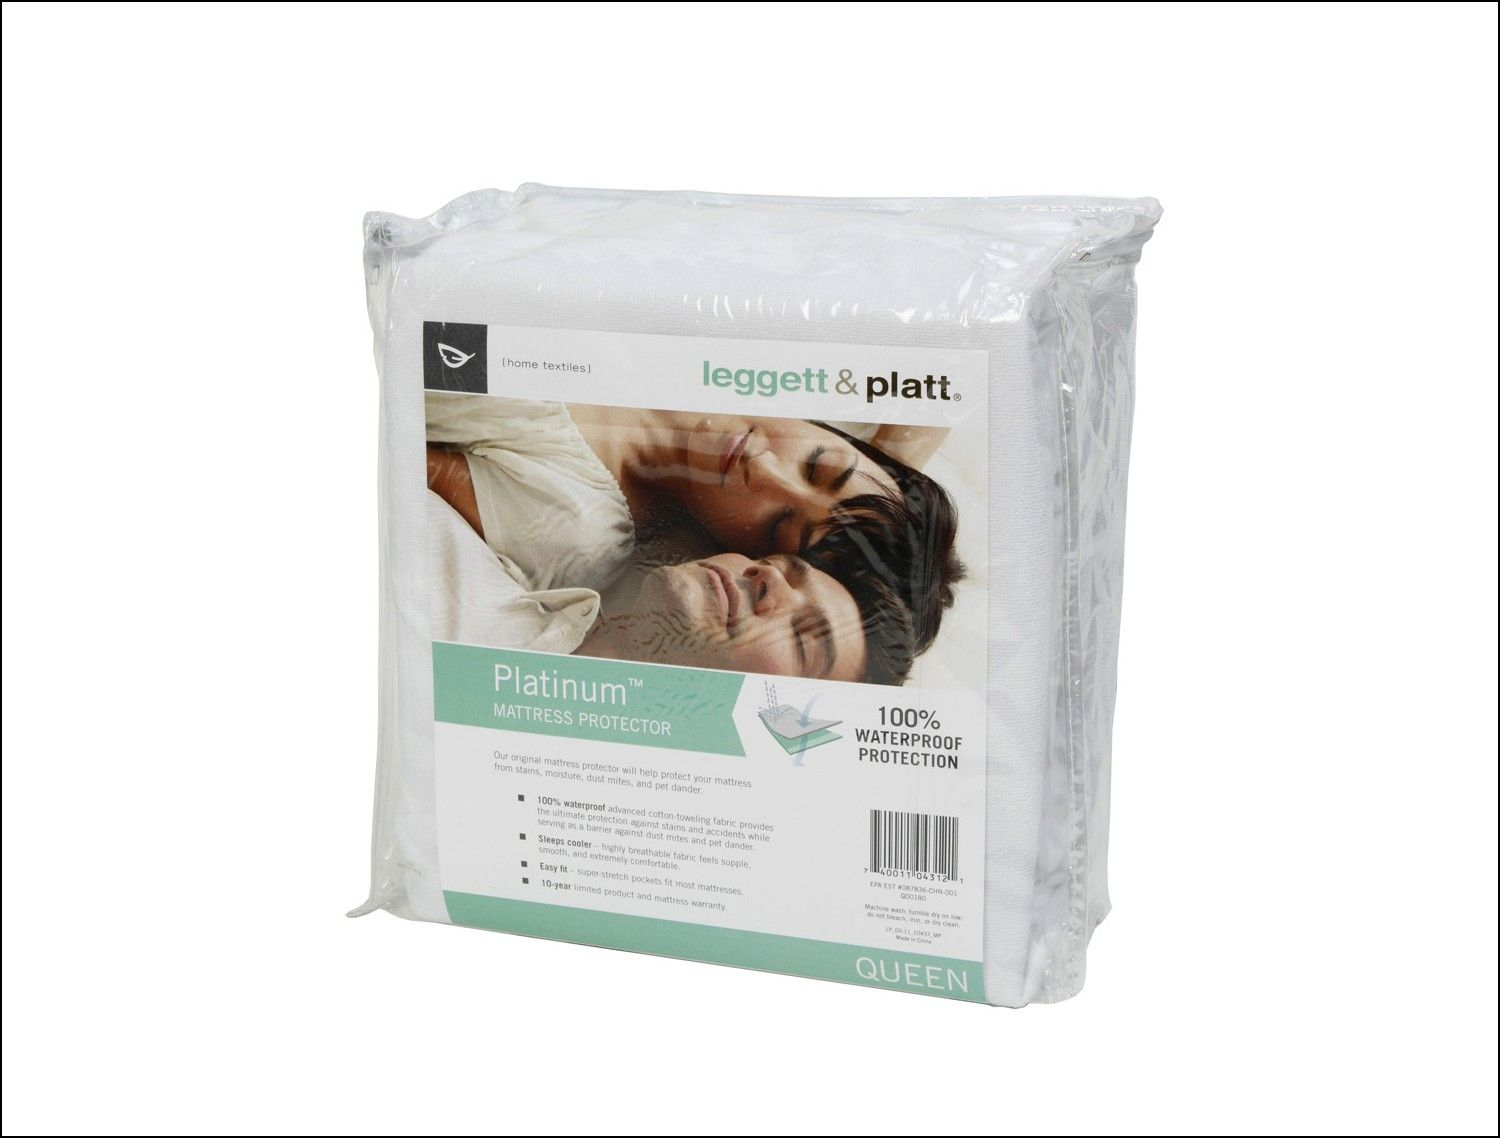 leggett and platt mattress protector mattress ideas pinterest